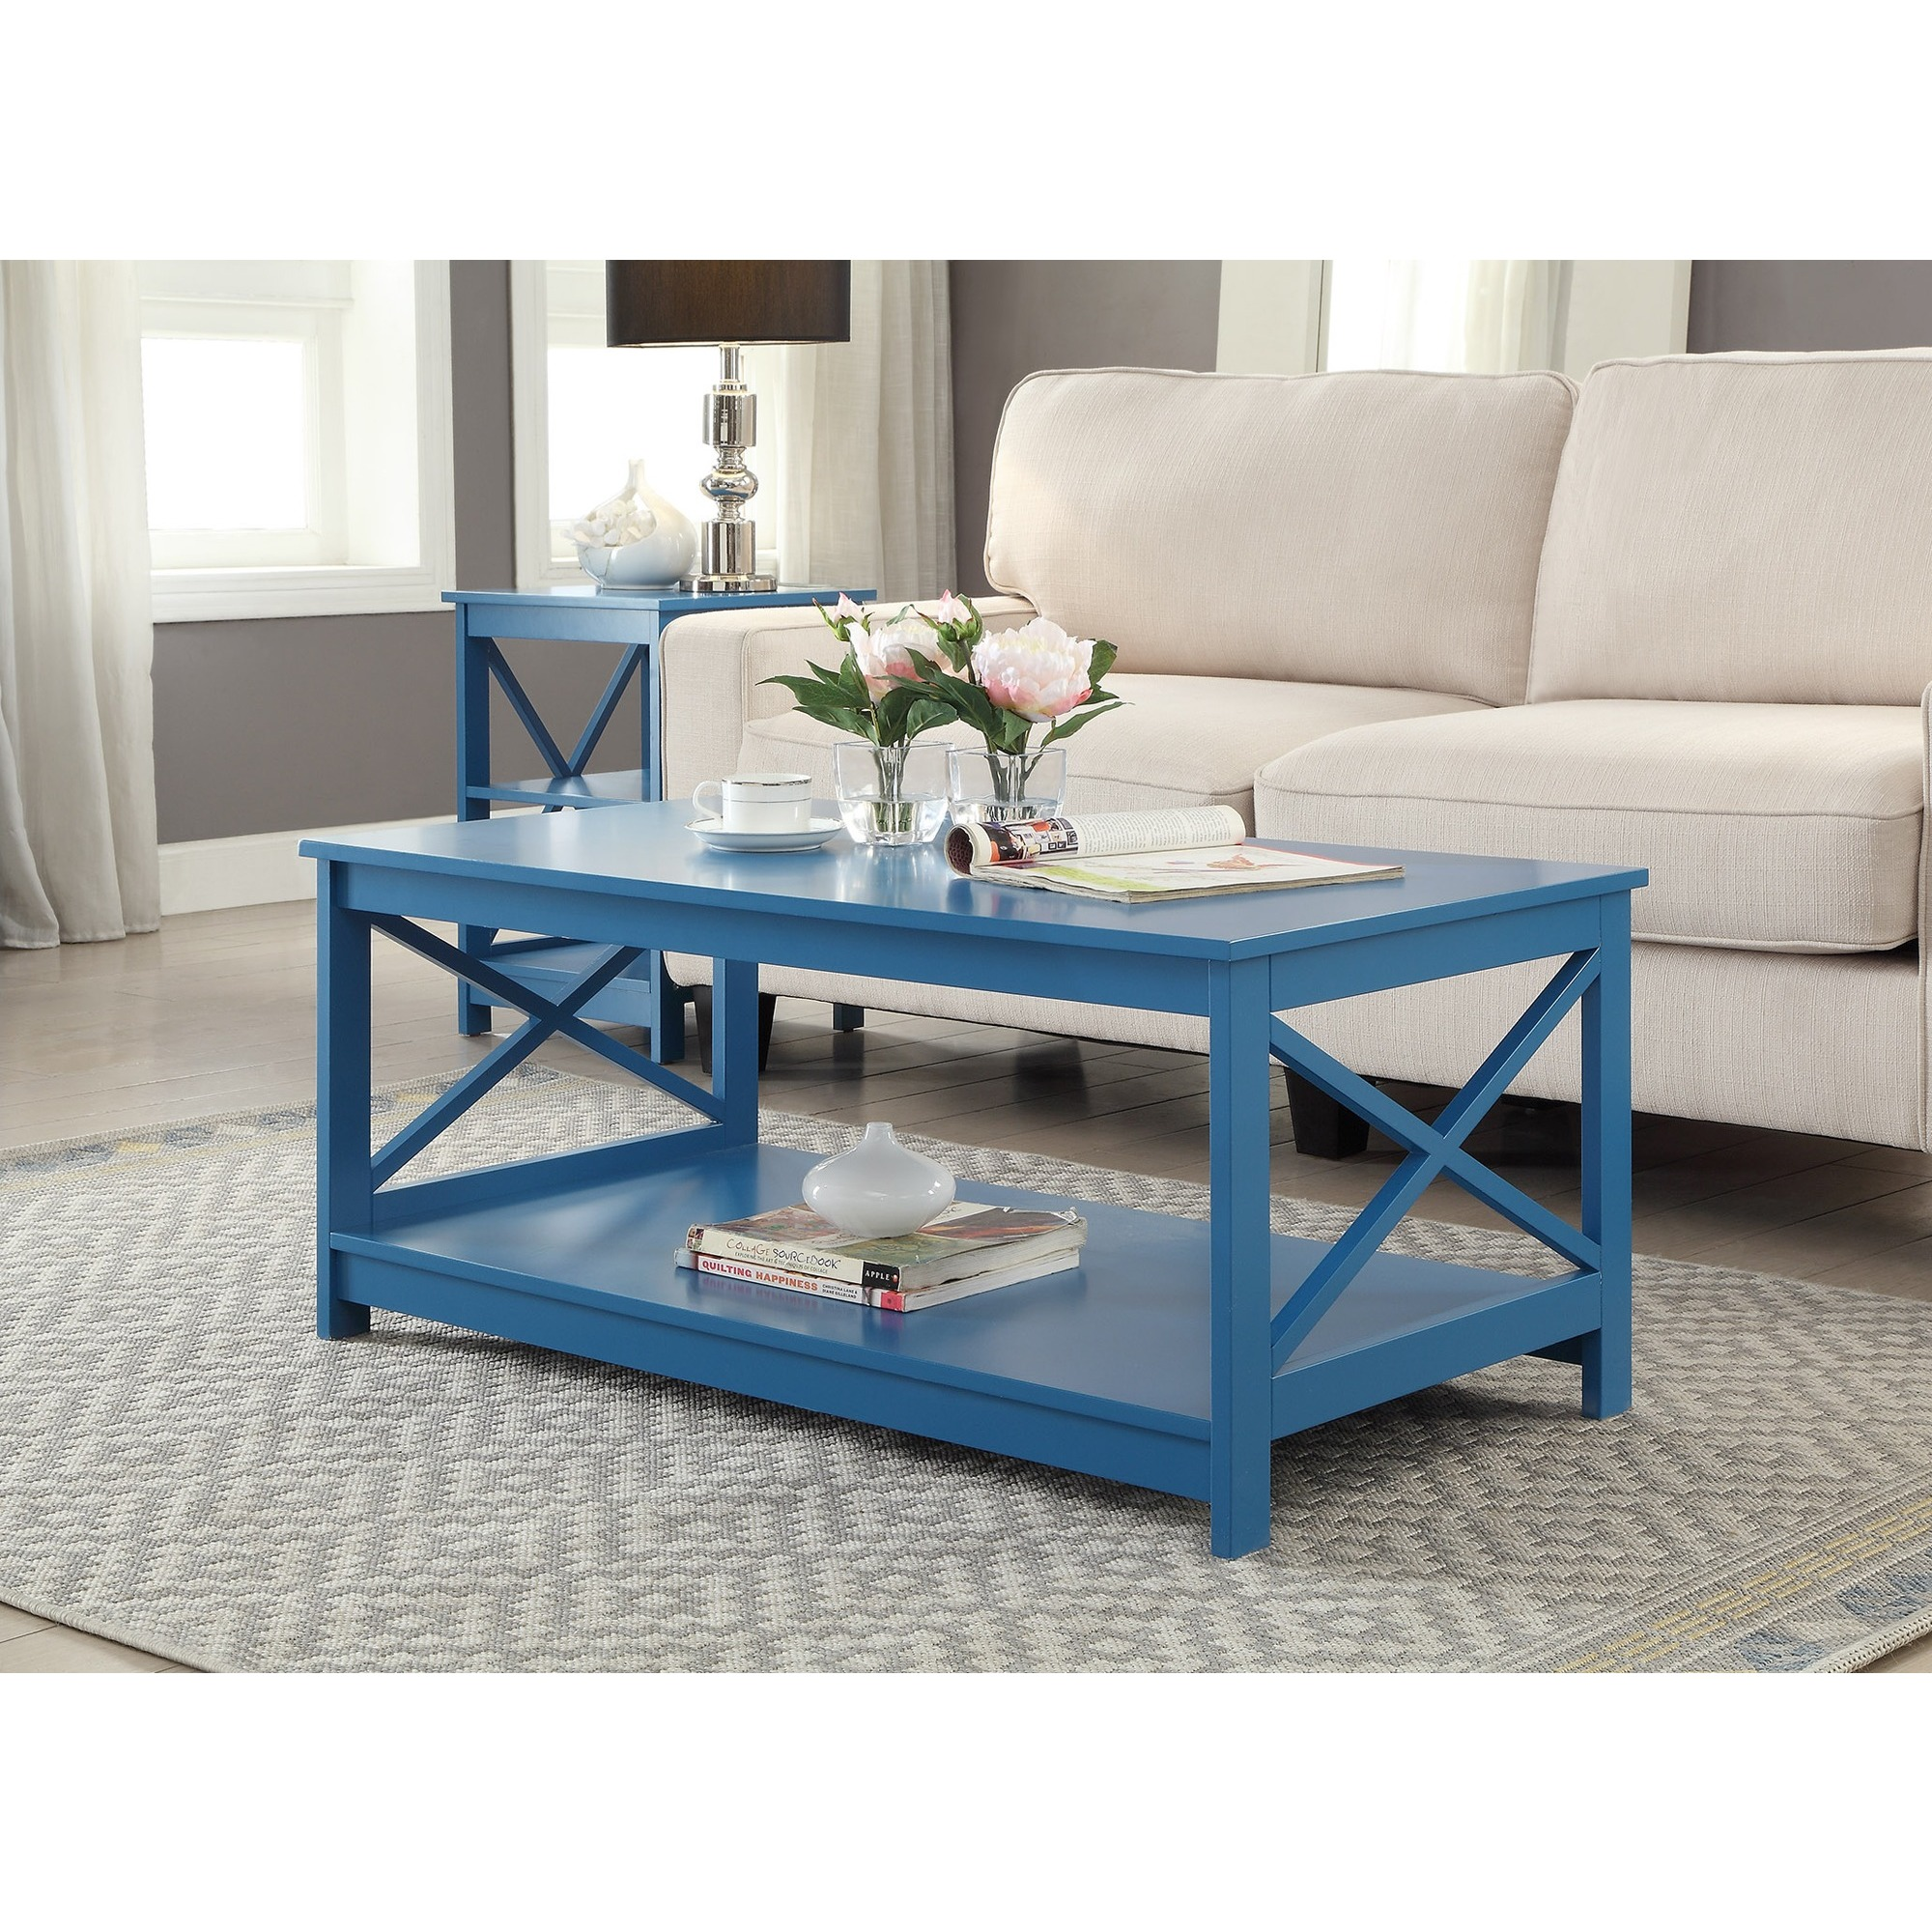 Blue Coffee Console Sofa & End Tables For Less